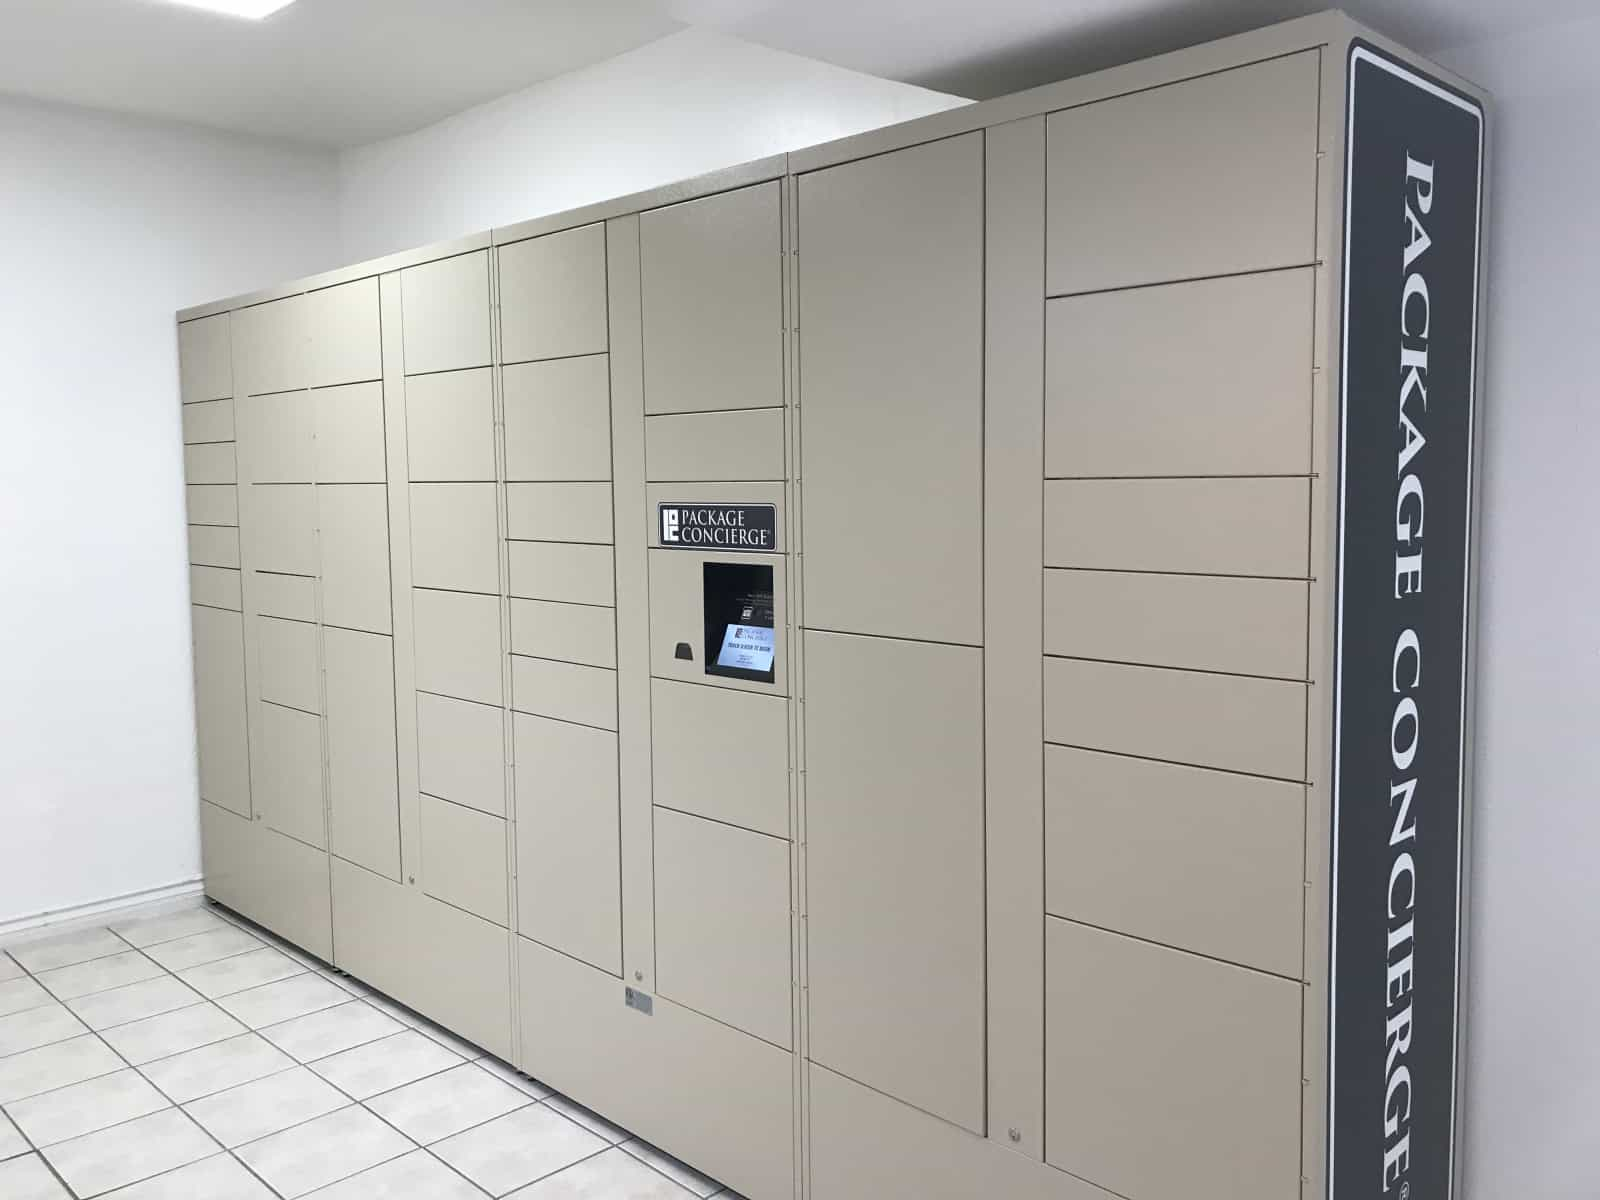 Automated Package Locker System